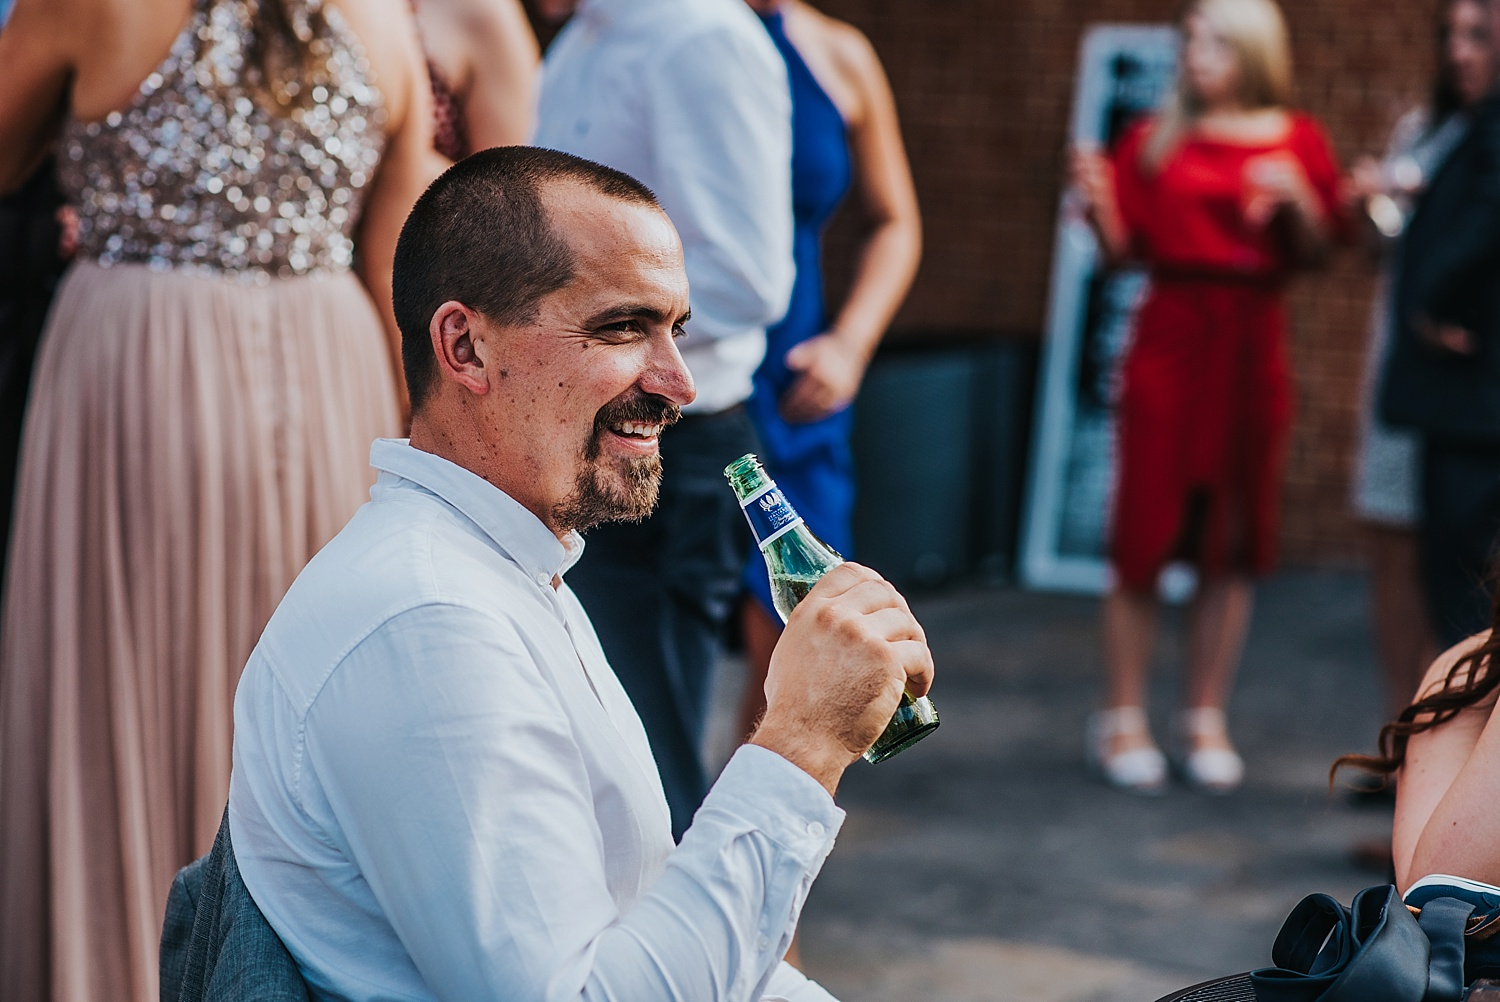 man drinking beer bombay sapphire distillery wedding laverstoke